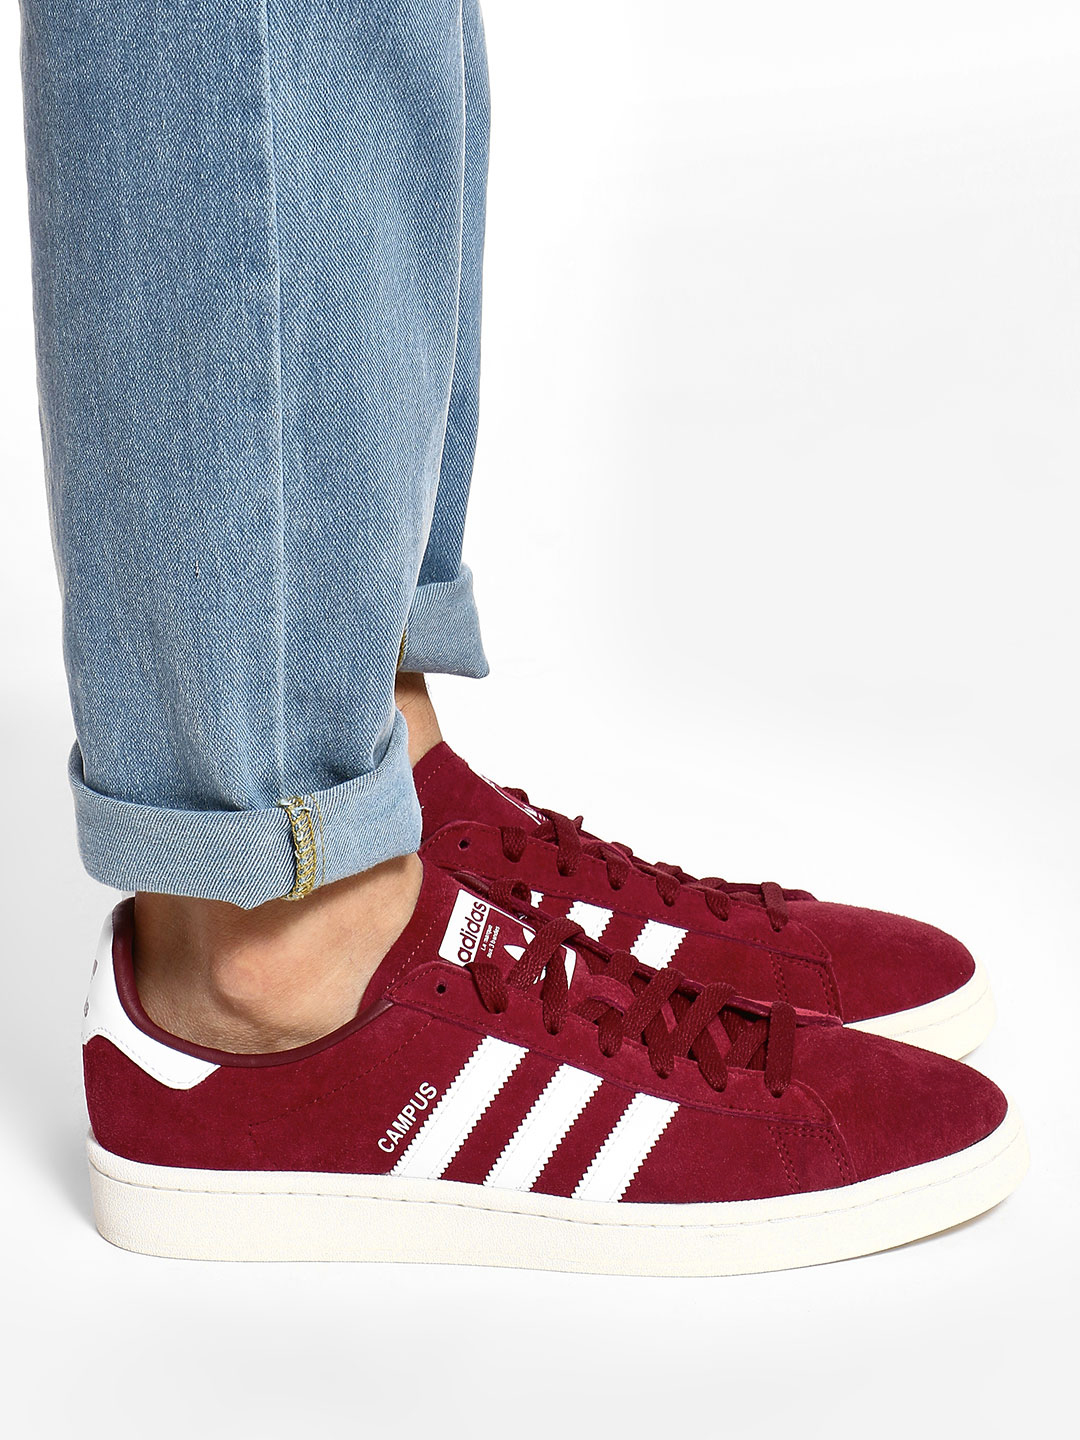 Adidas Originals Red Campus Shoes 1